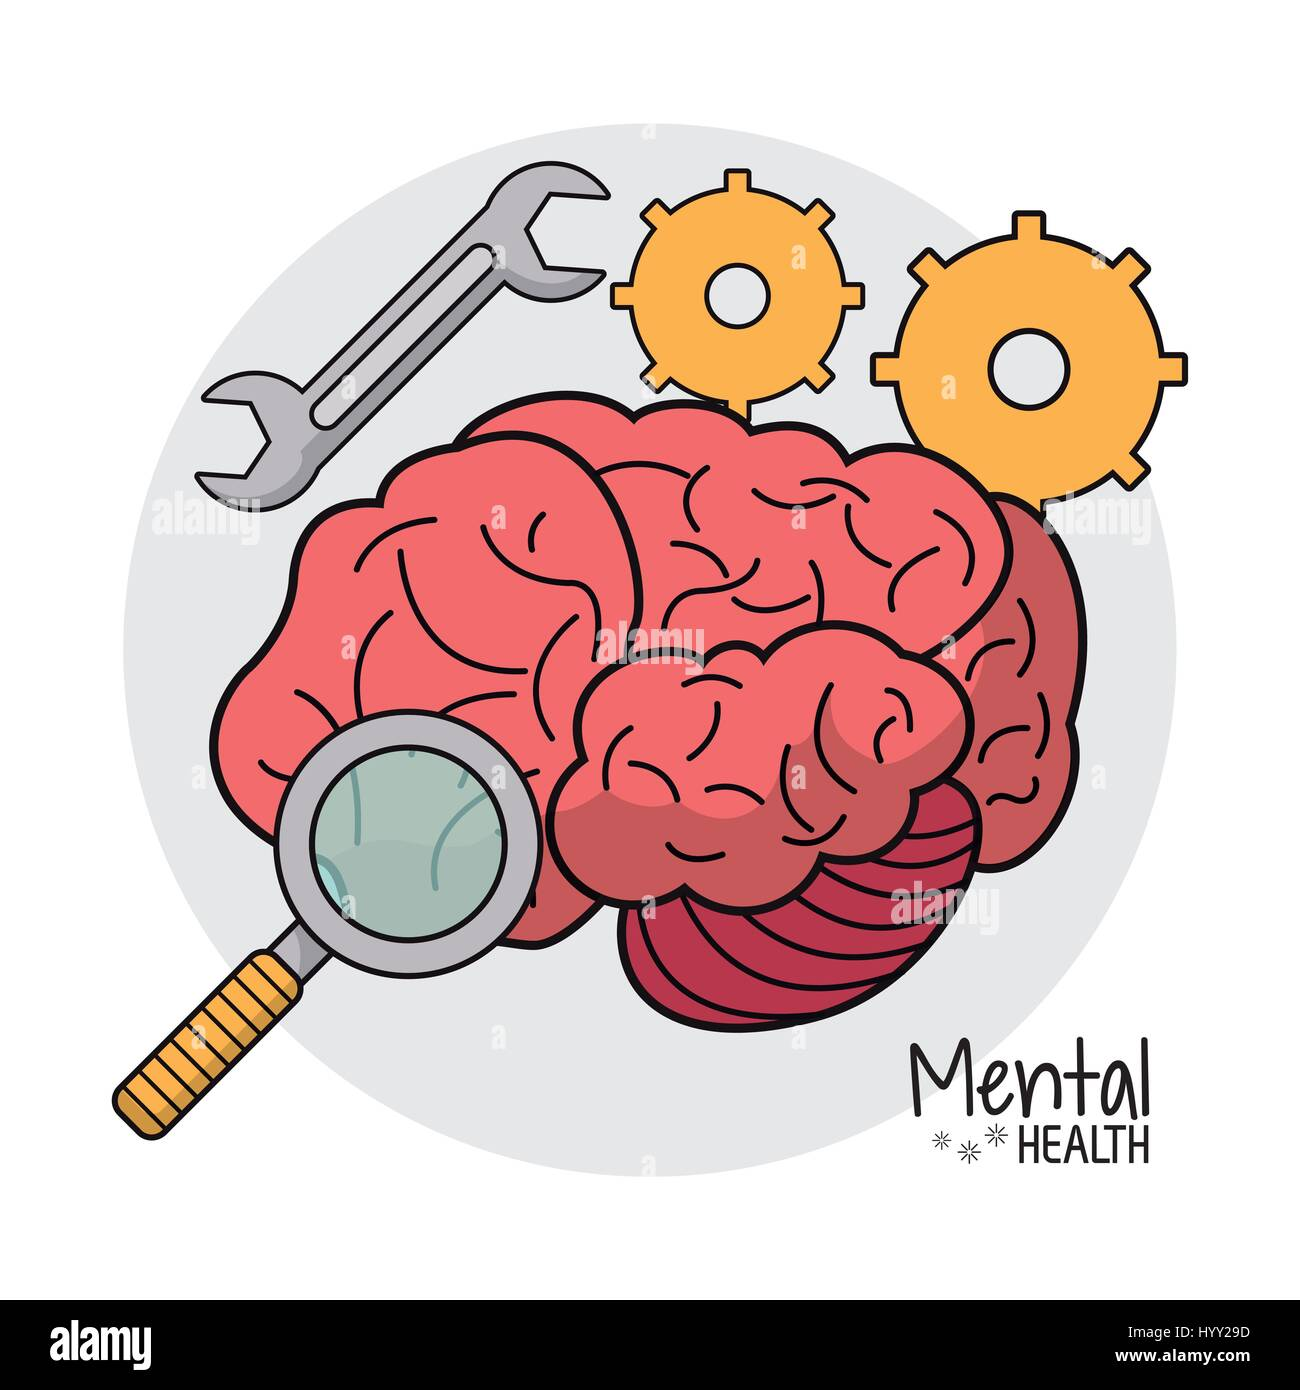 mental health gear search image - Stock Image